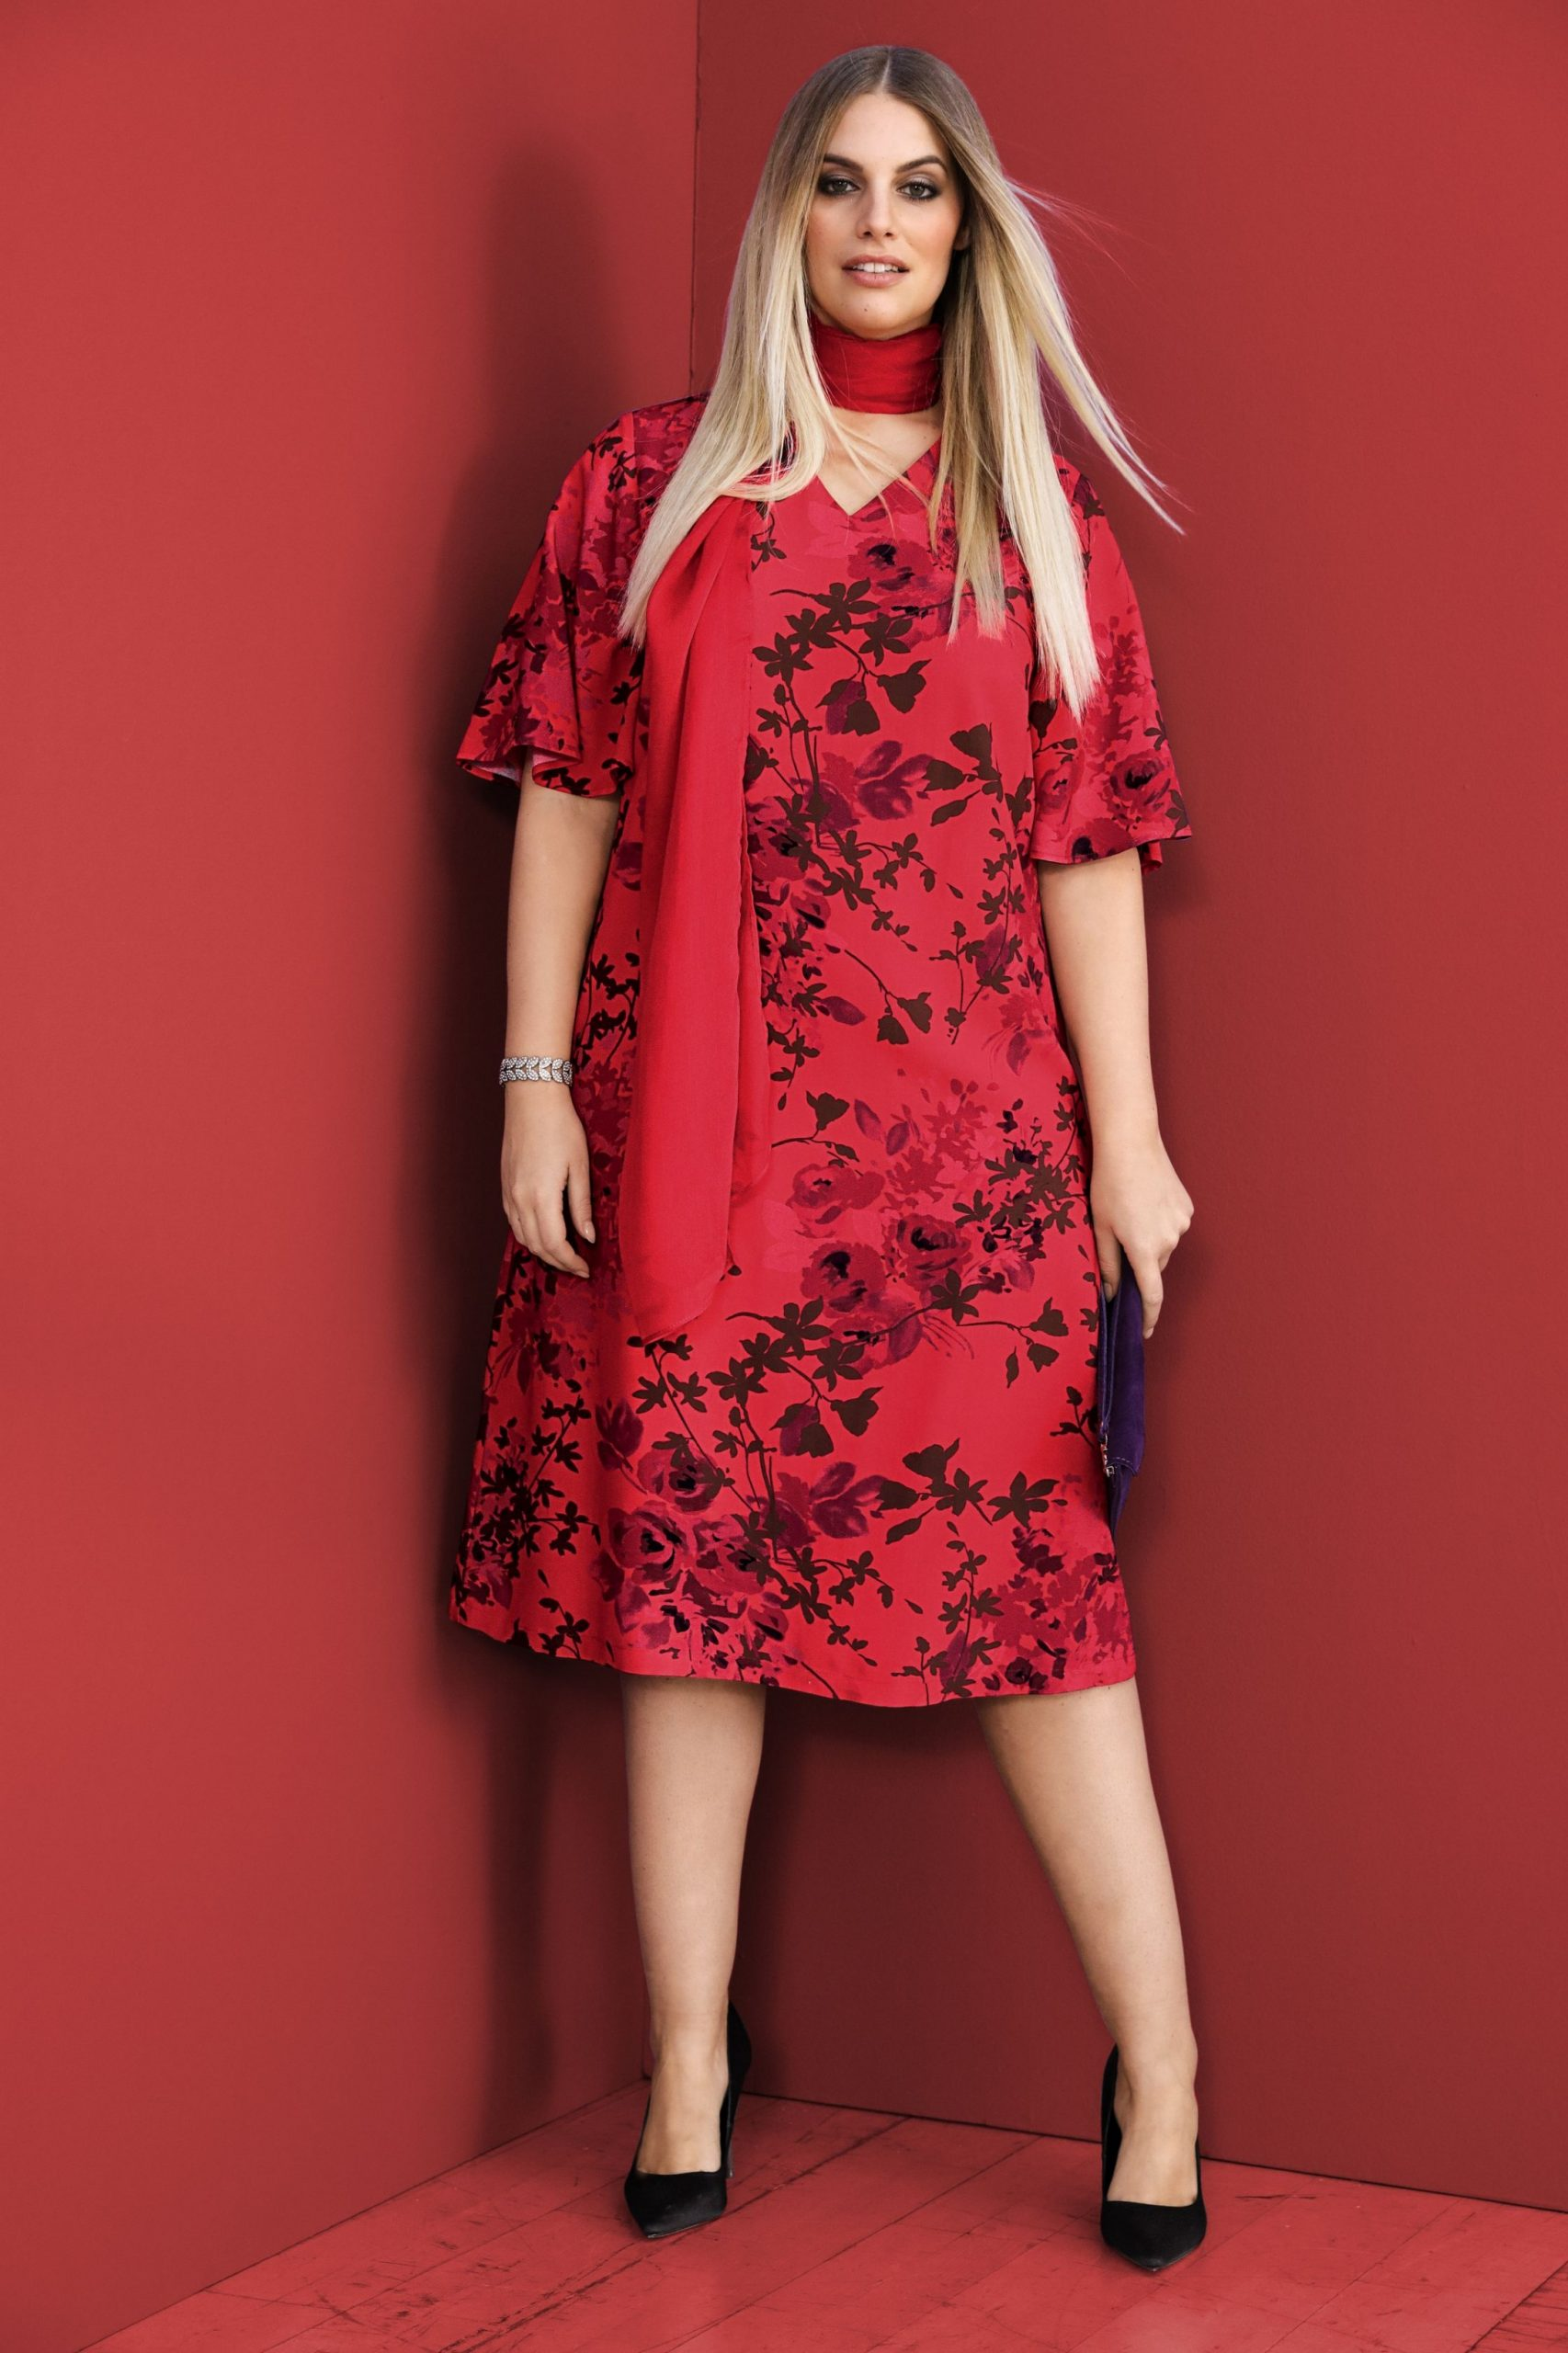 red hot floral